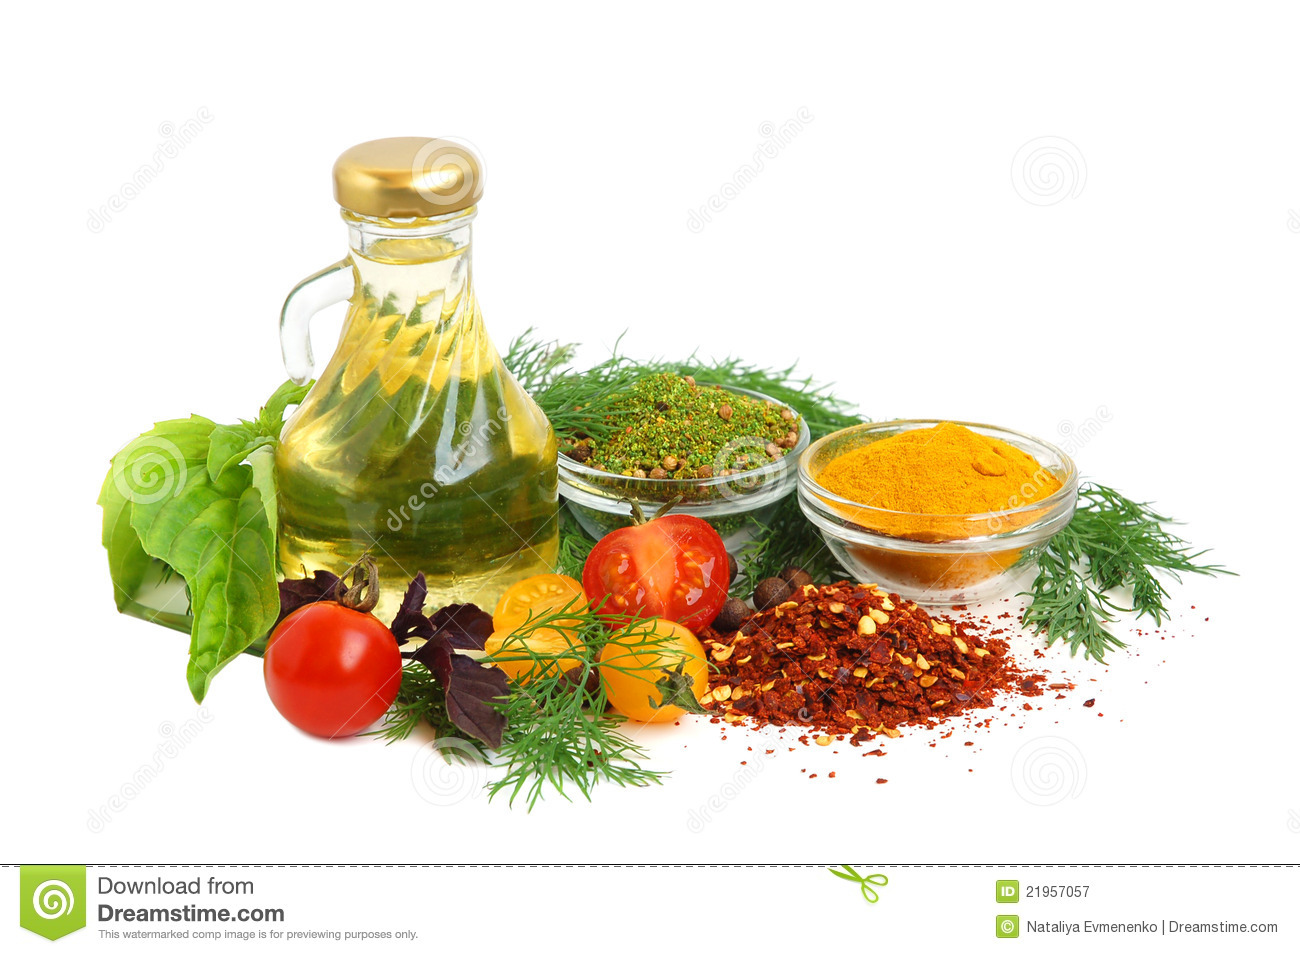 ingredients-cooking-21957057.jpg